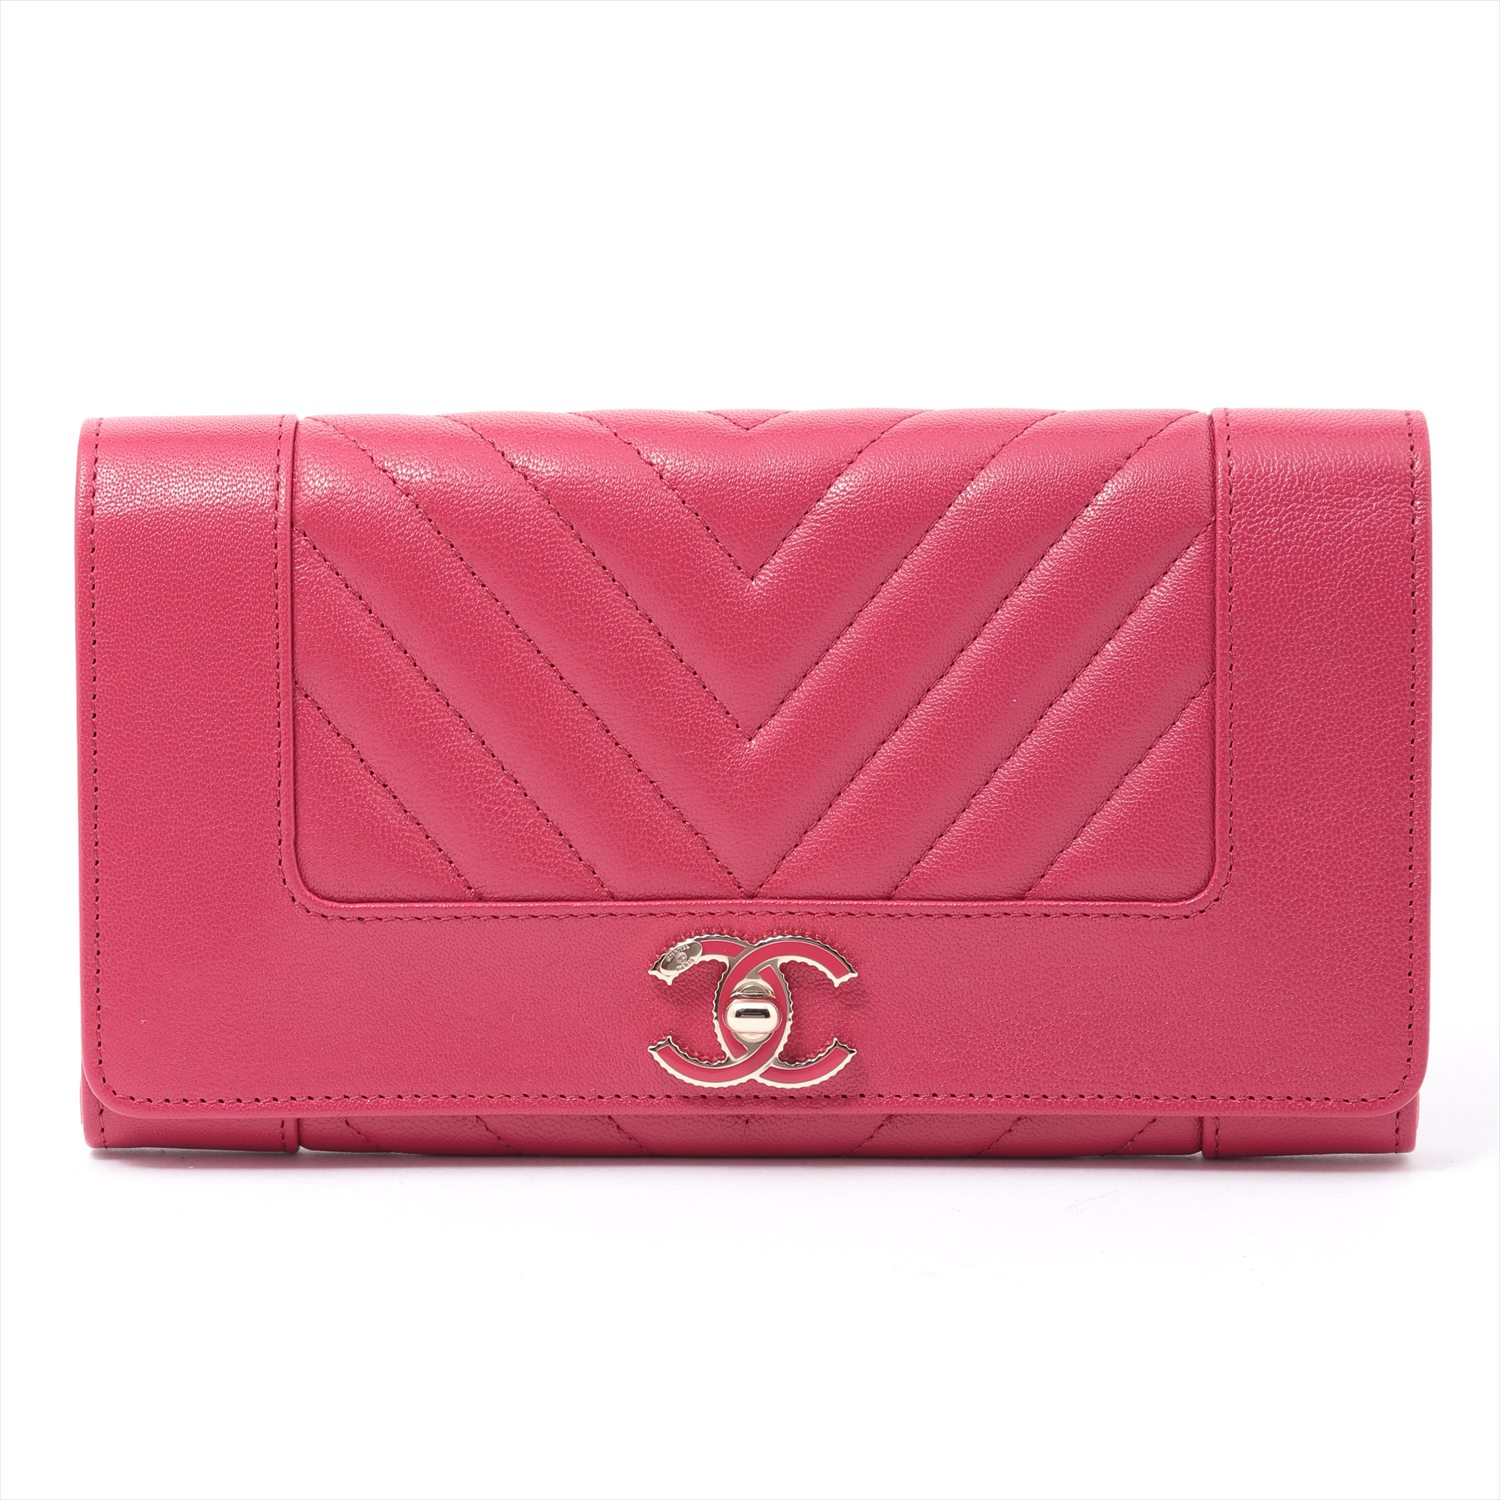 [Used goods] Chanel Mademoiselle vintage leather wallet Long bi-fold pink gold fittings with A80971 boxes